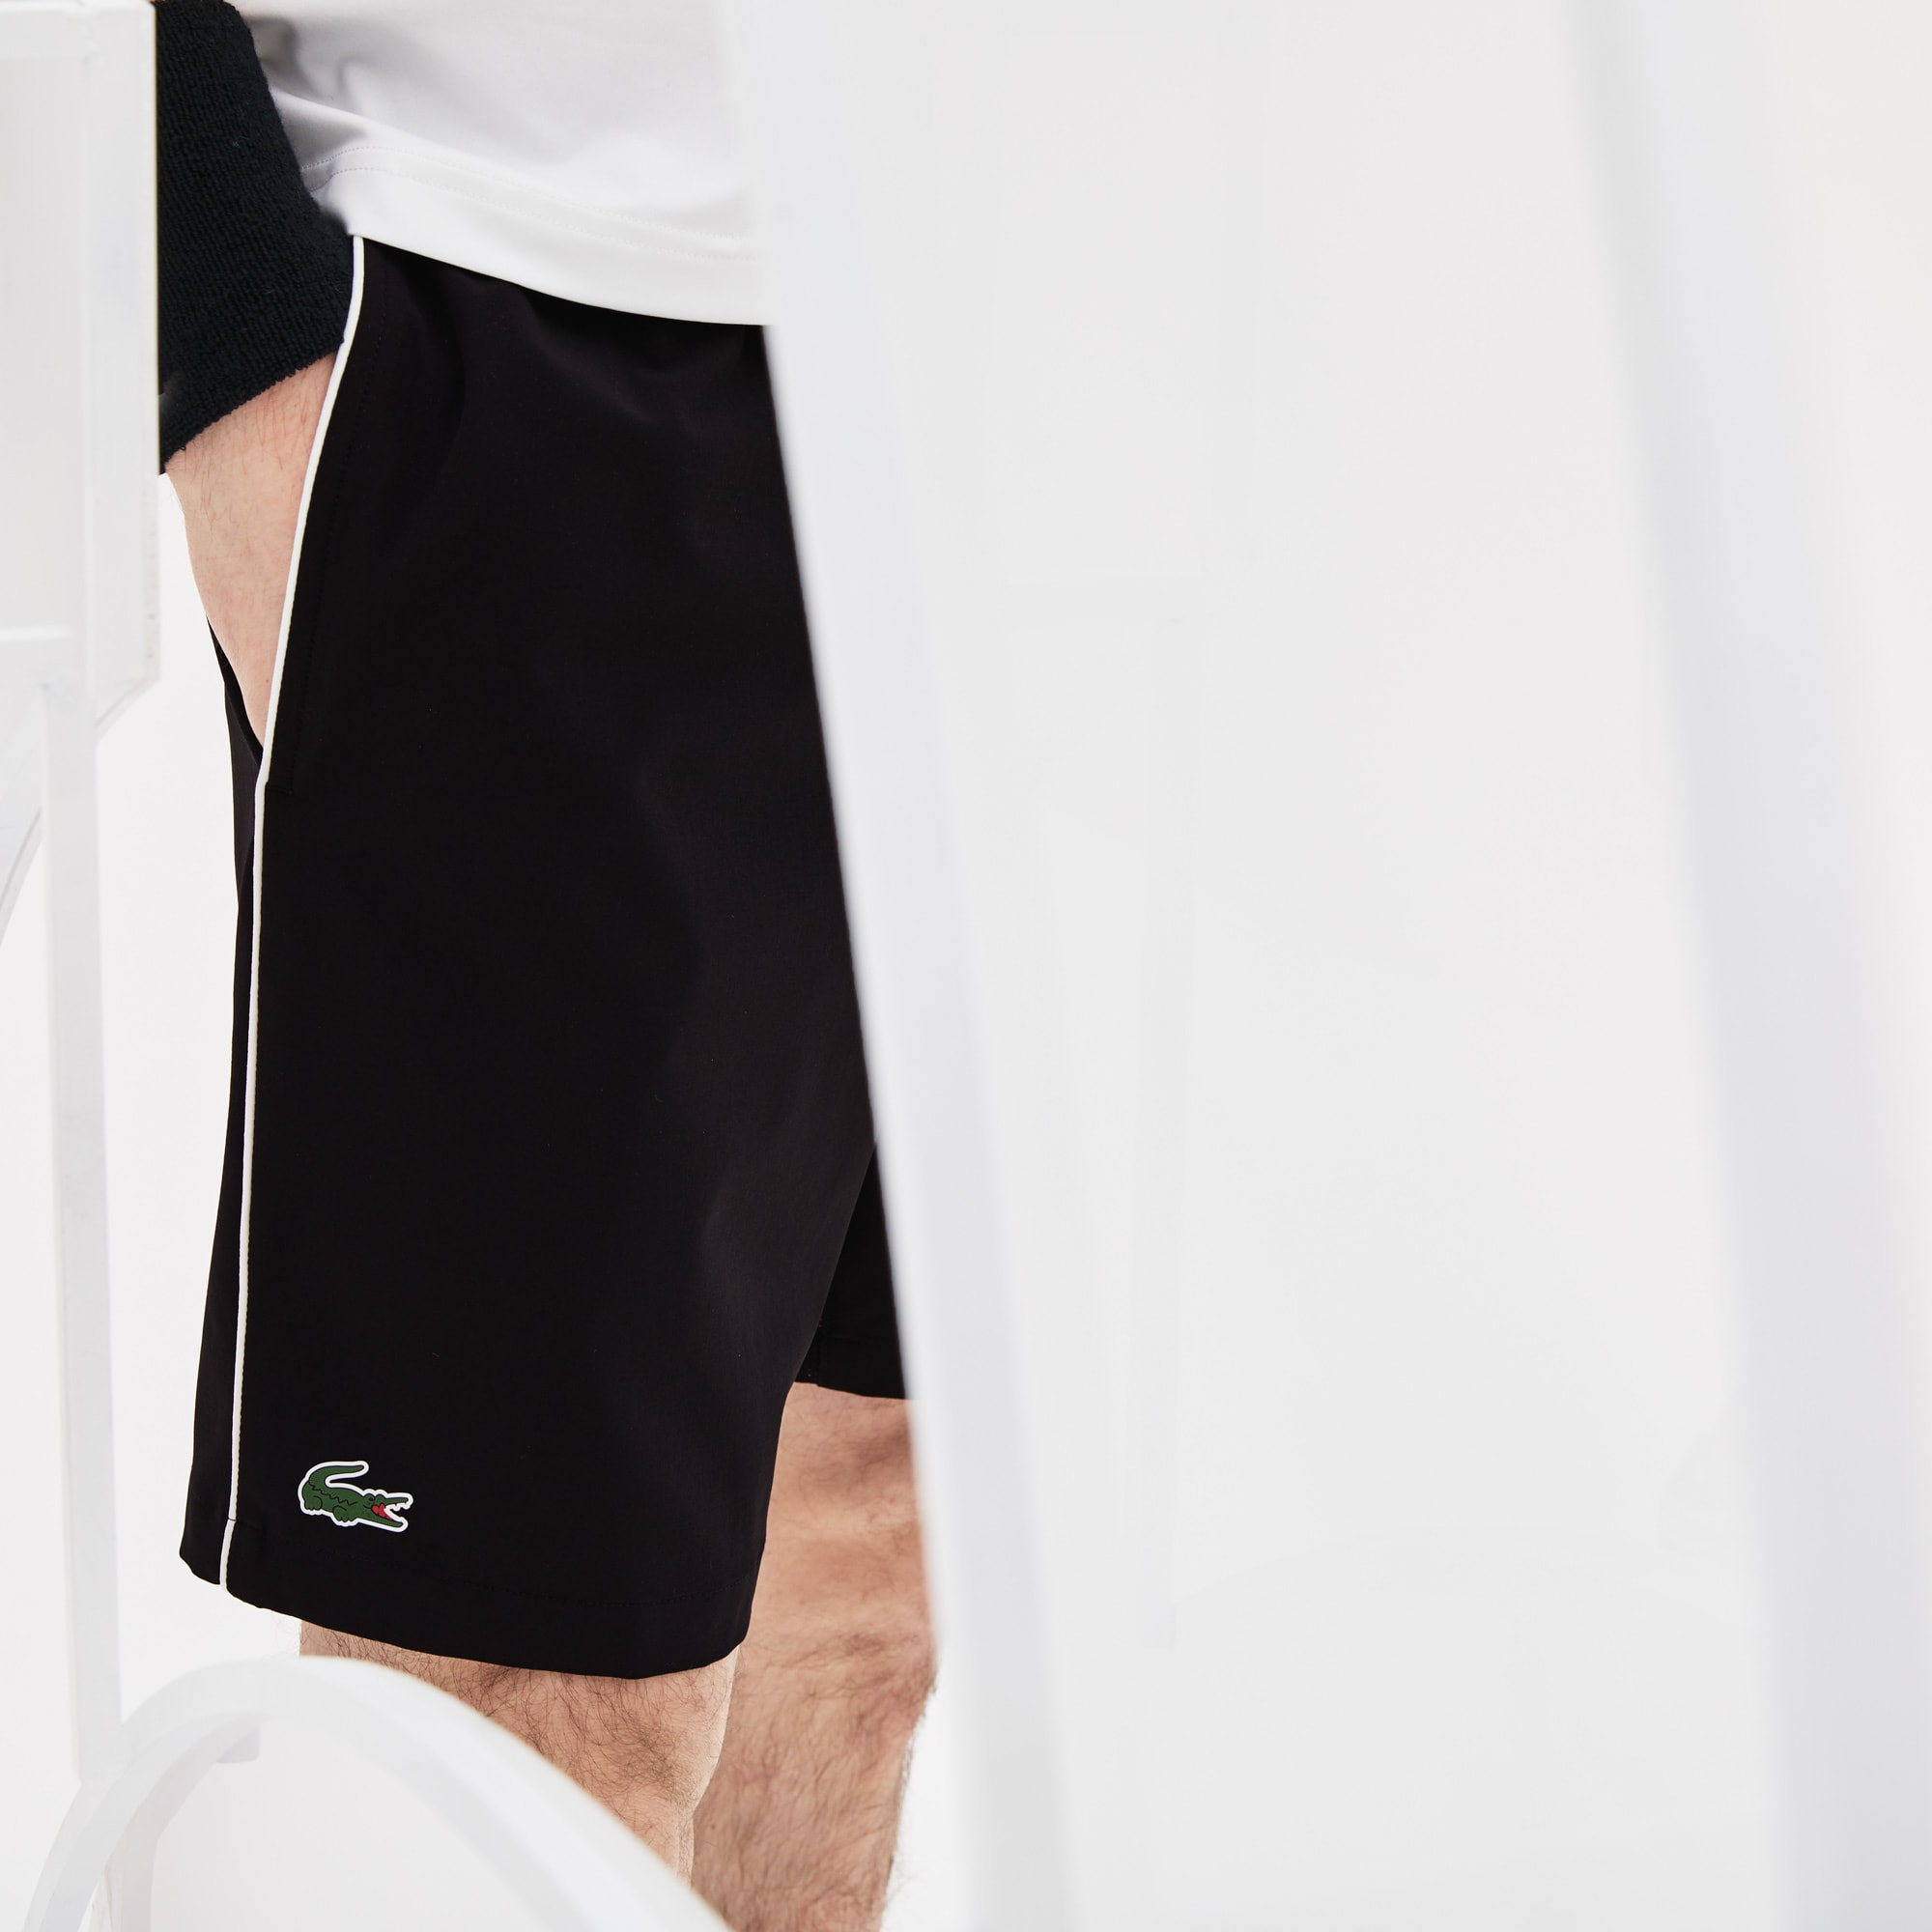 Korte Broek Heren C En A.Lacoste Sport Novak Djokovic Support With Style Collection Korte